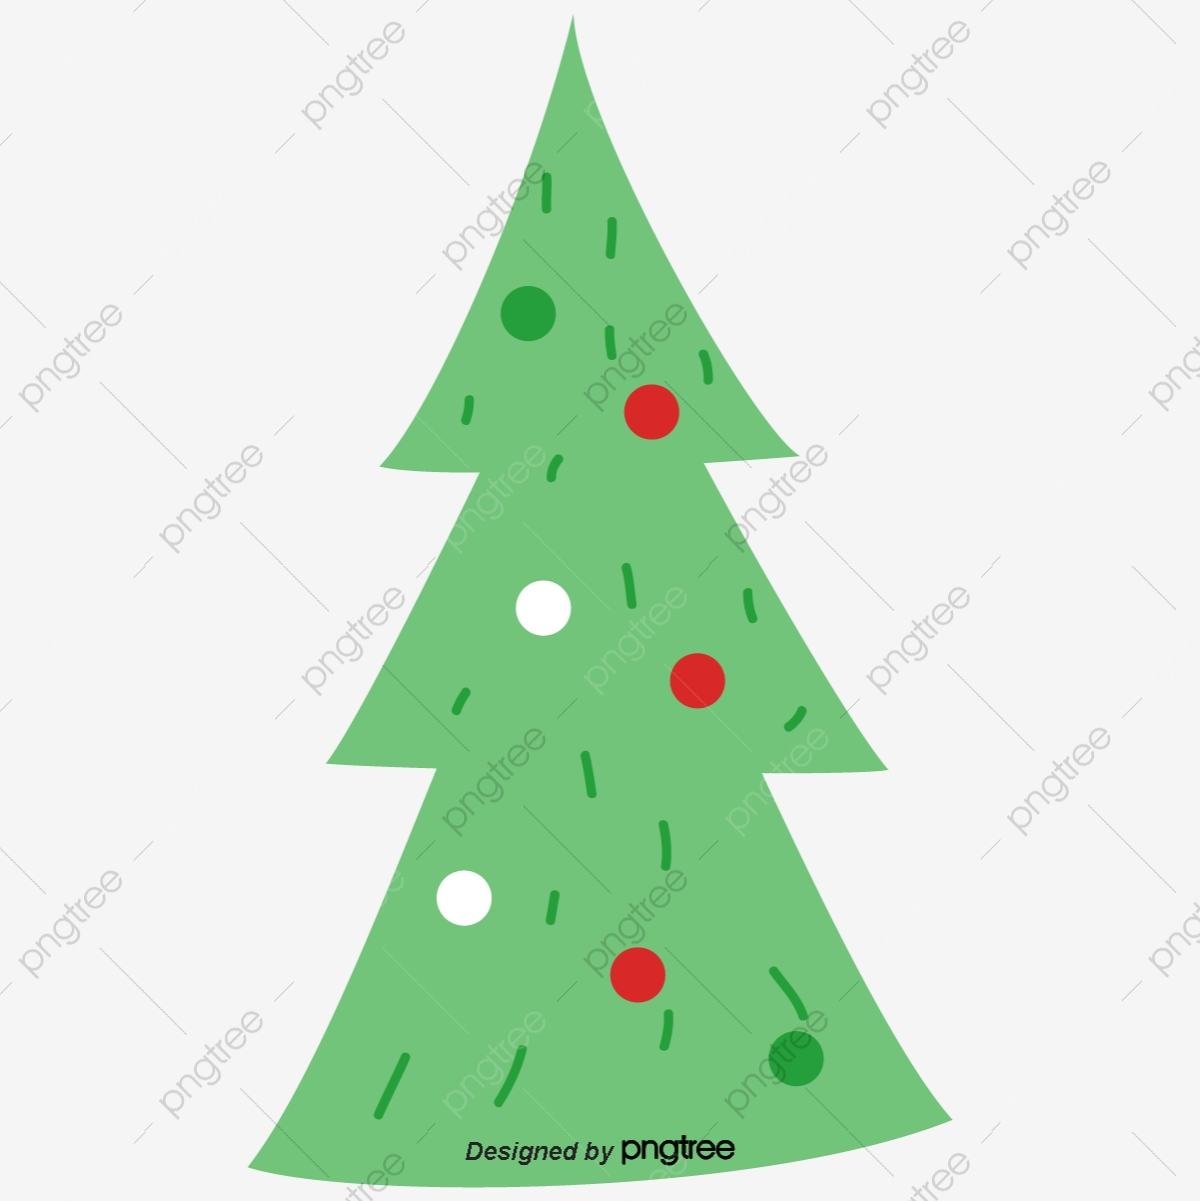 Cartoon Green Christmas Tree Christmas Tree Christmas Small Trees Png And Vector With Transparent Background For Free Download